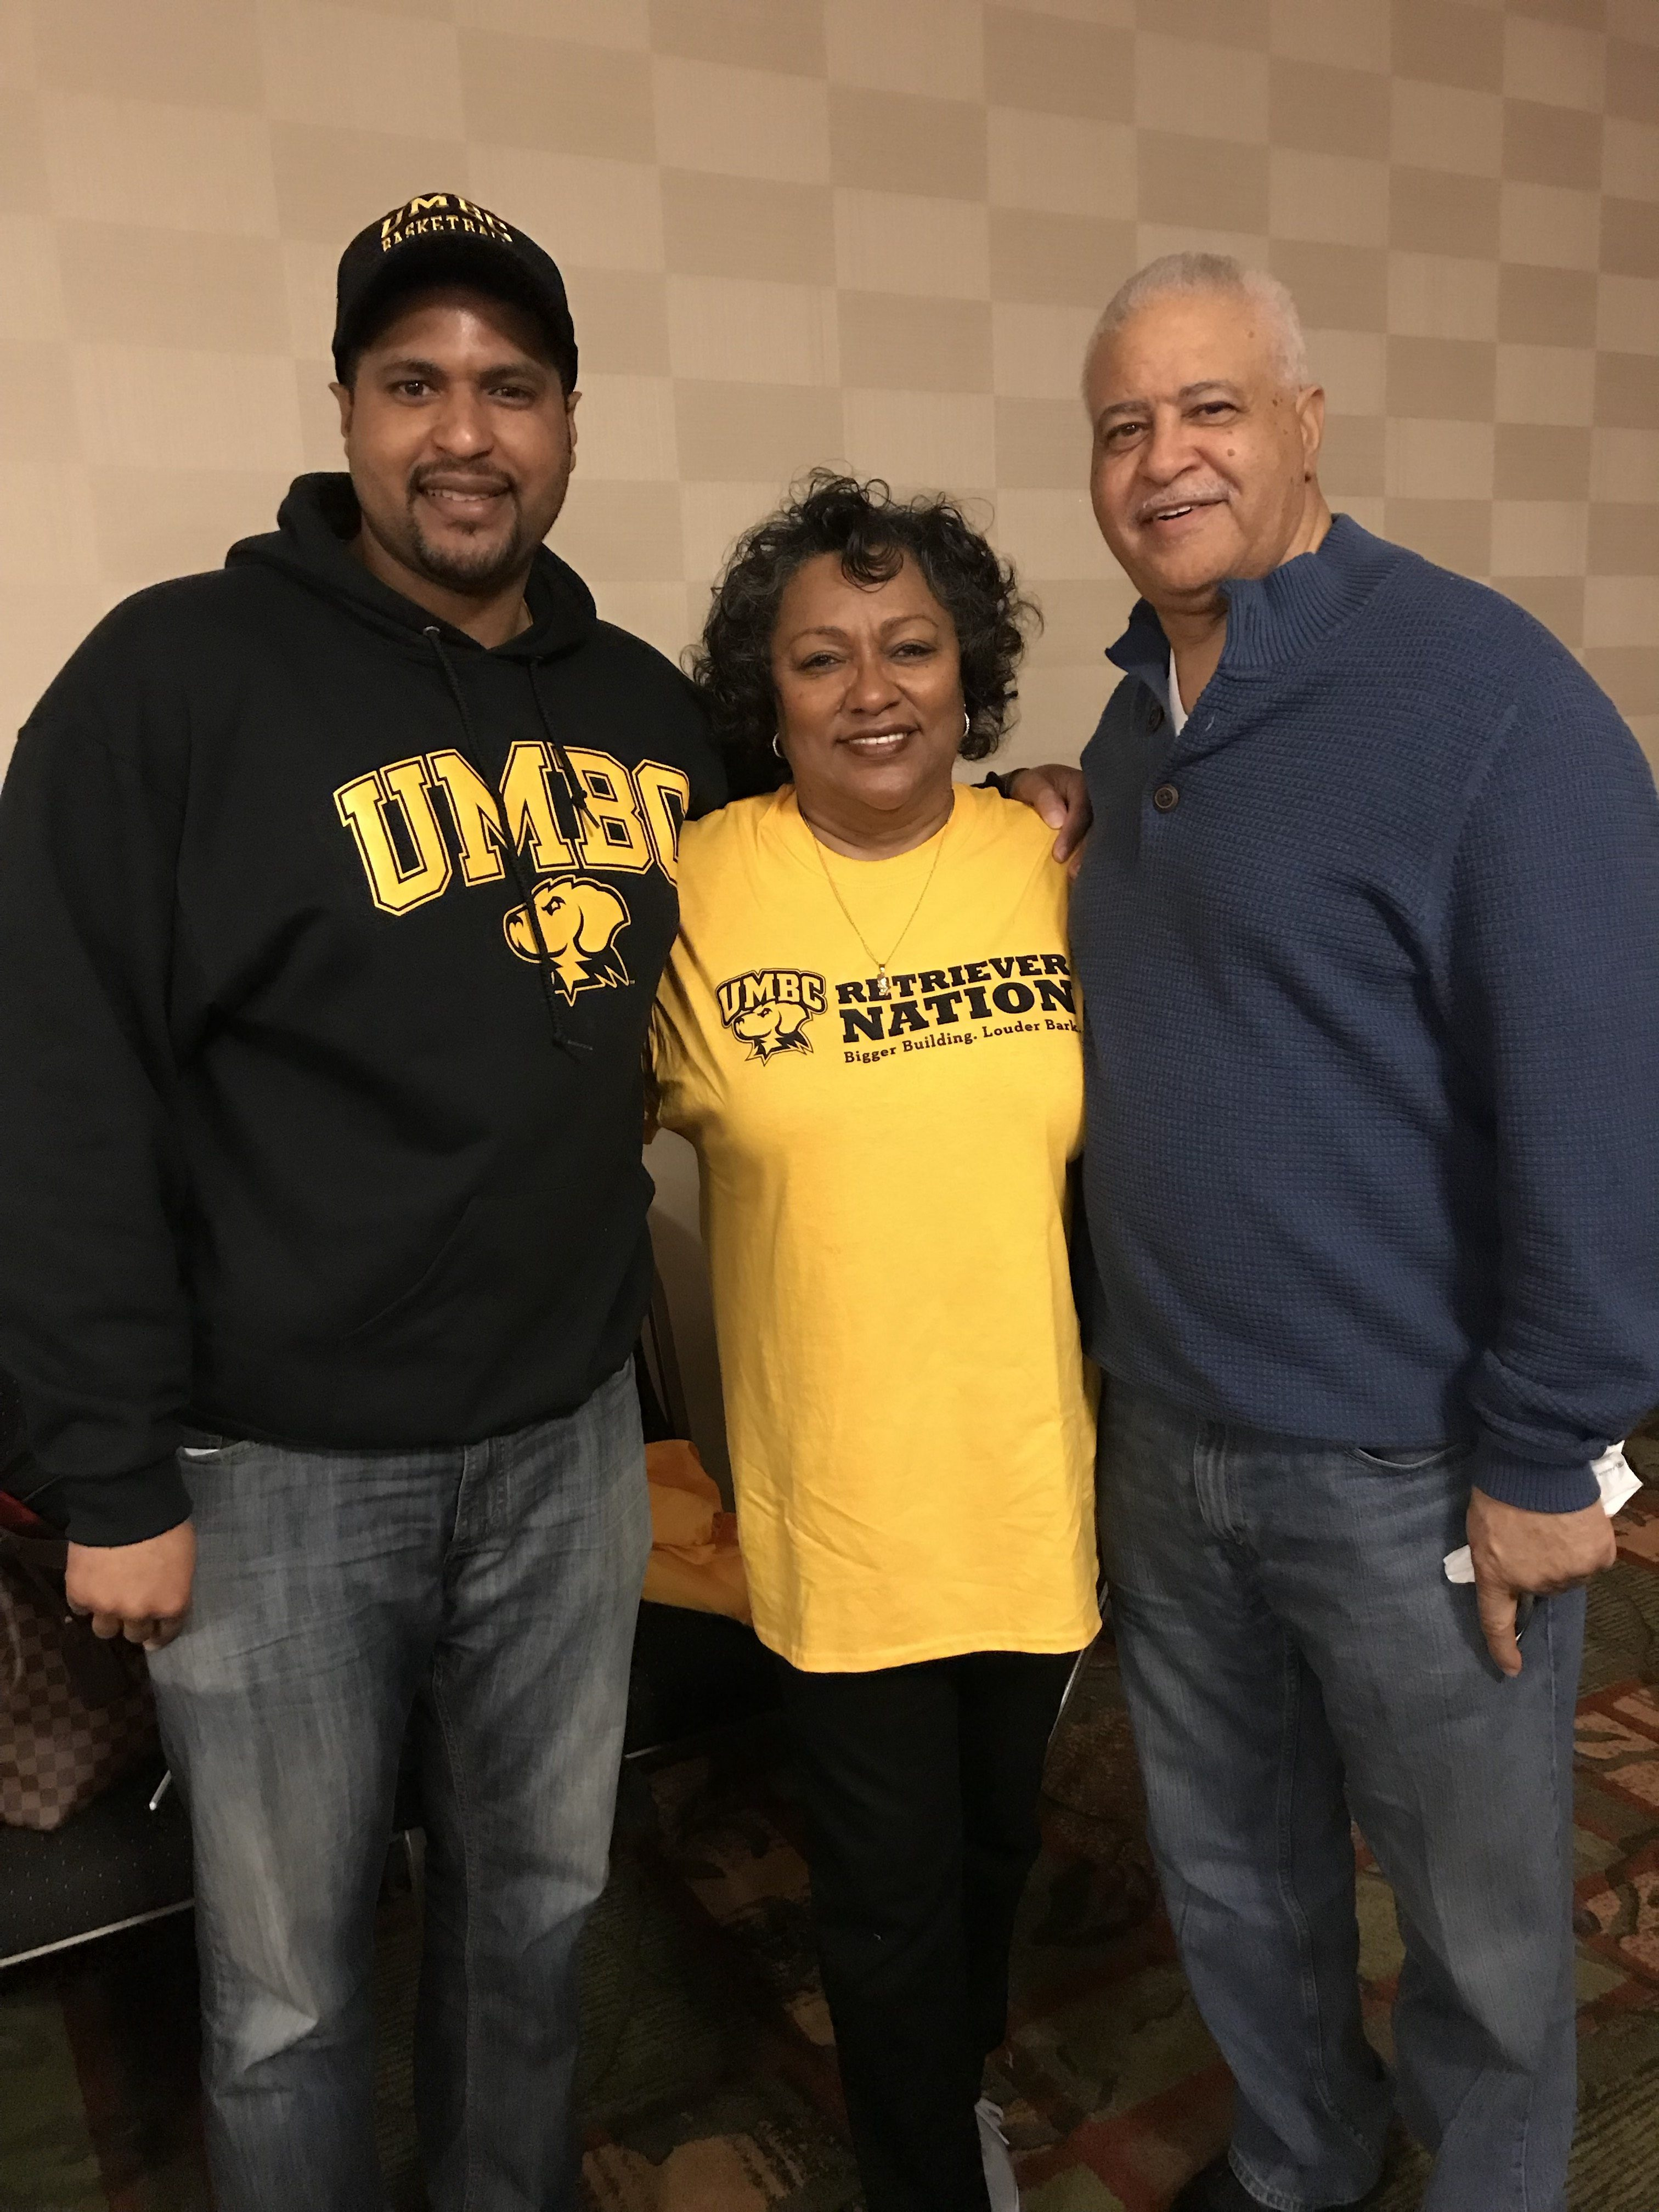 Three fans in UMBC gear pose together